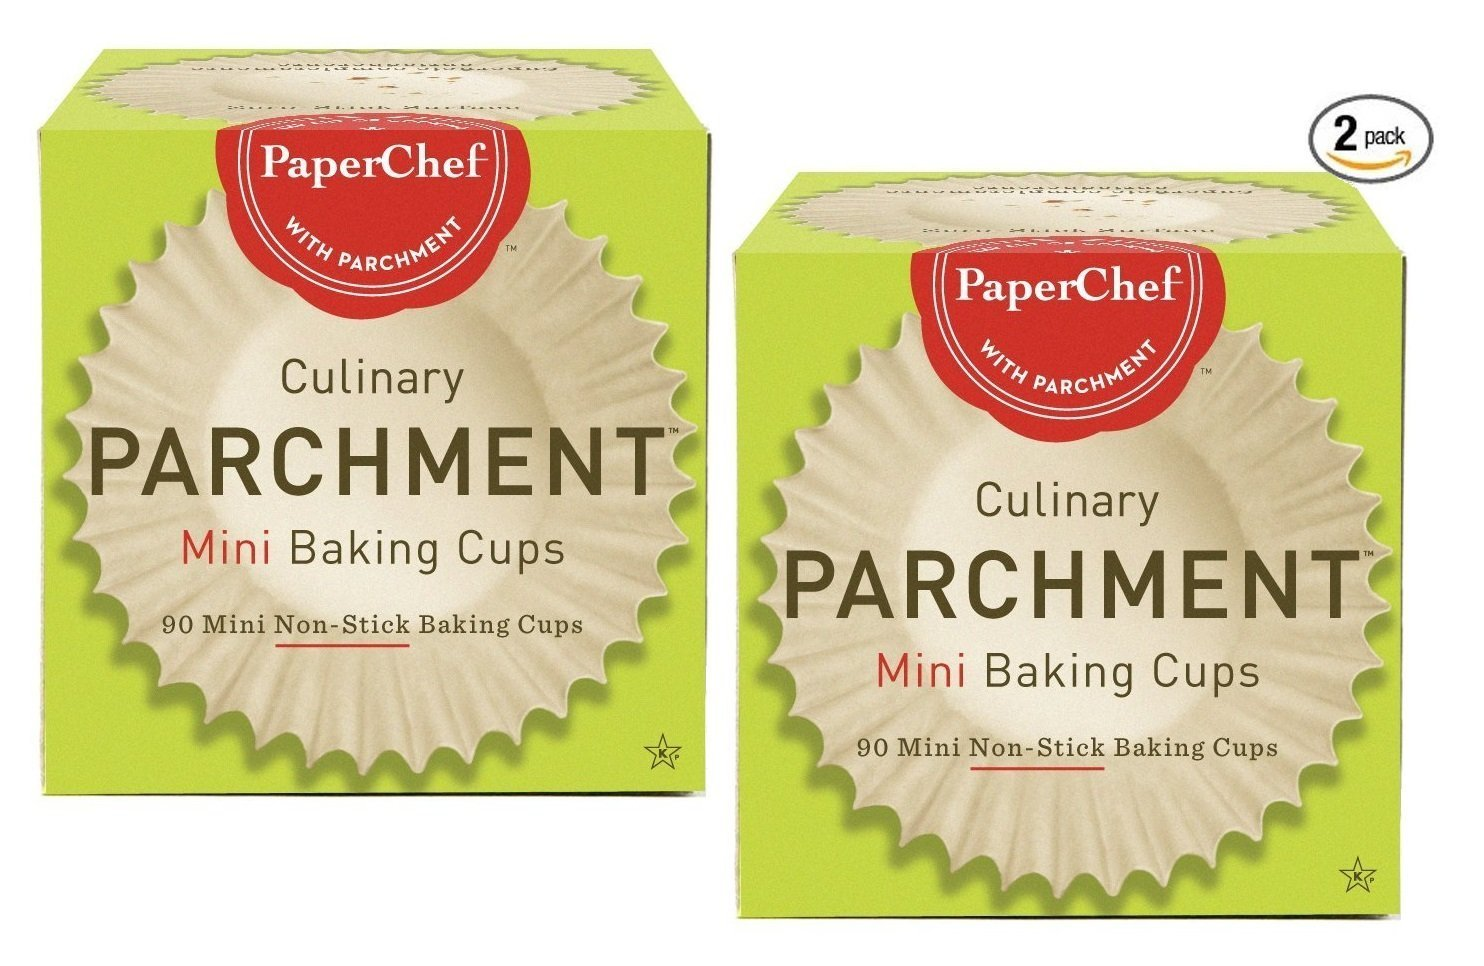 (2 Pack) Mini Paper Cupcake Liners / Baking Cups, 90-ct/Box Paper Chef 05010